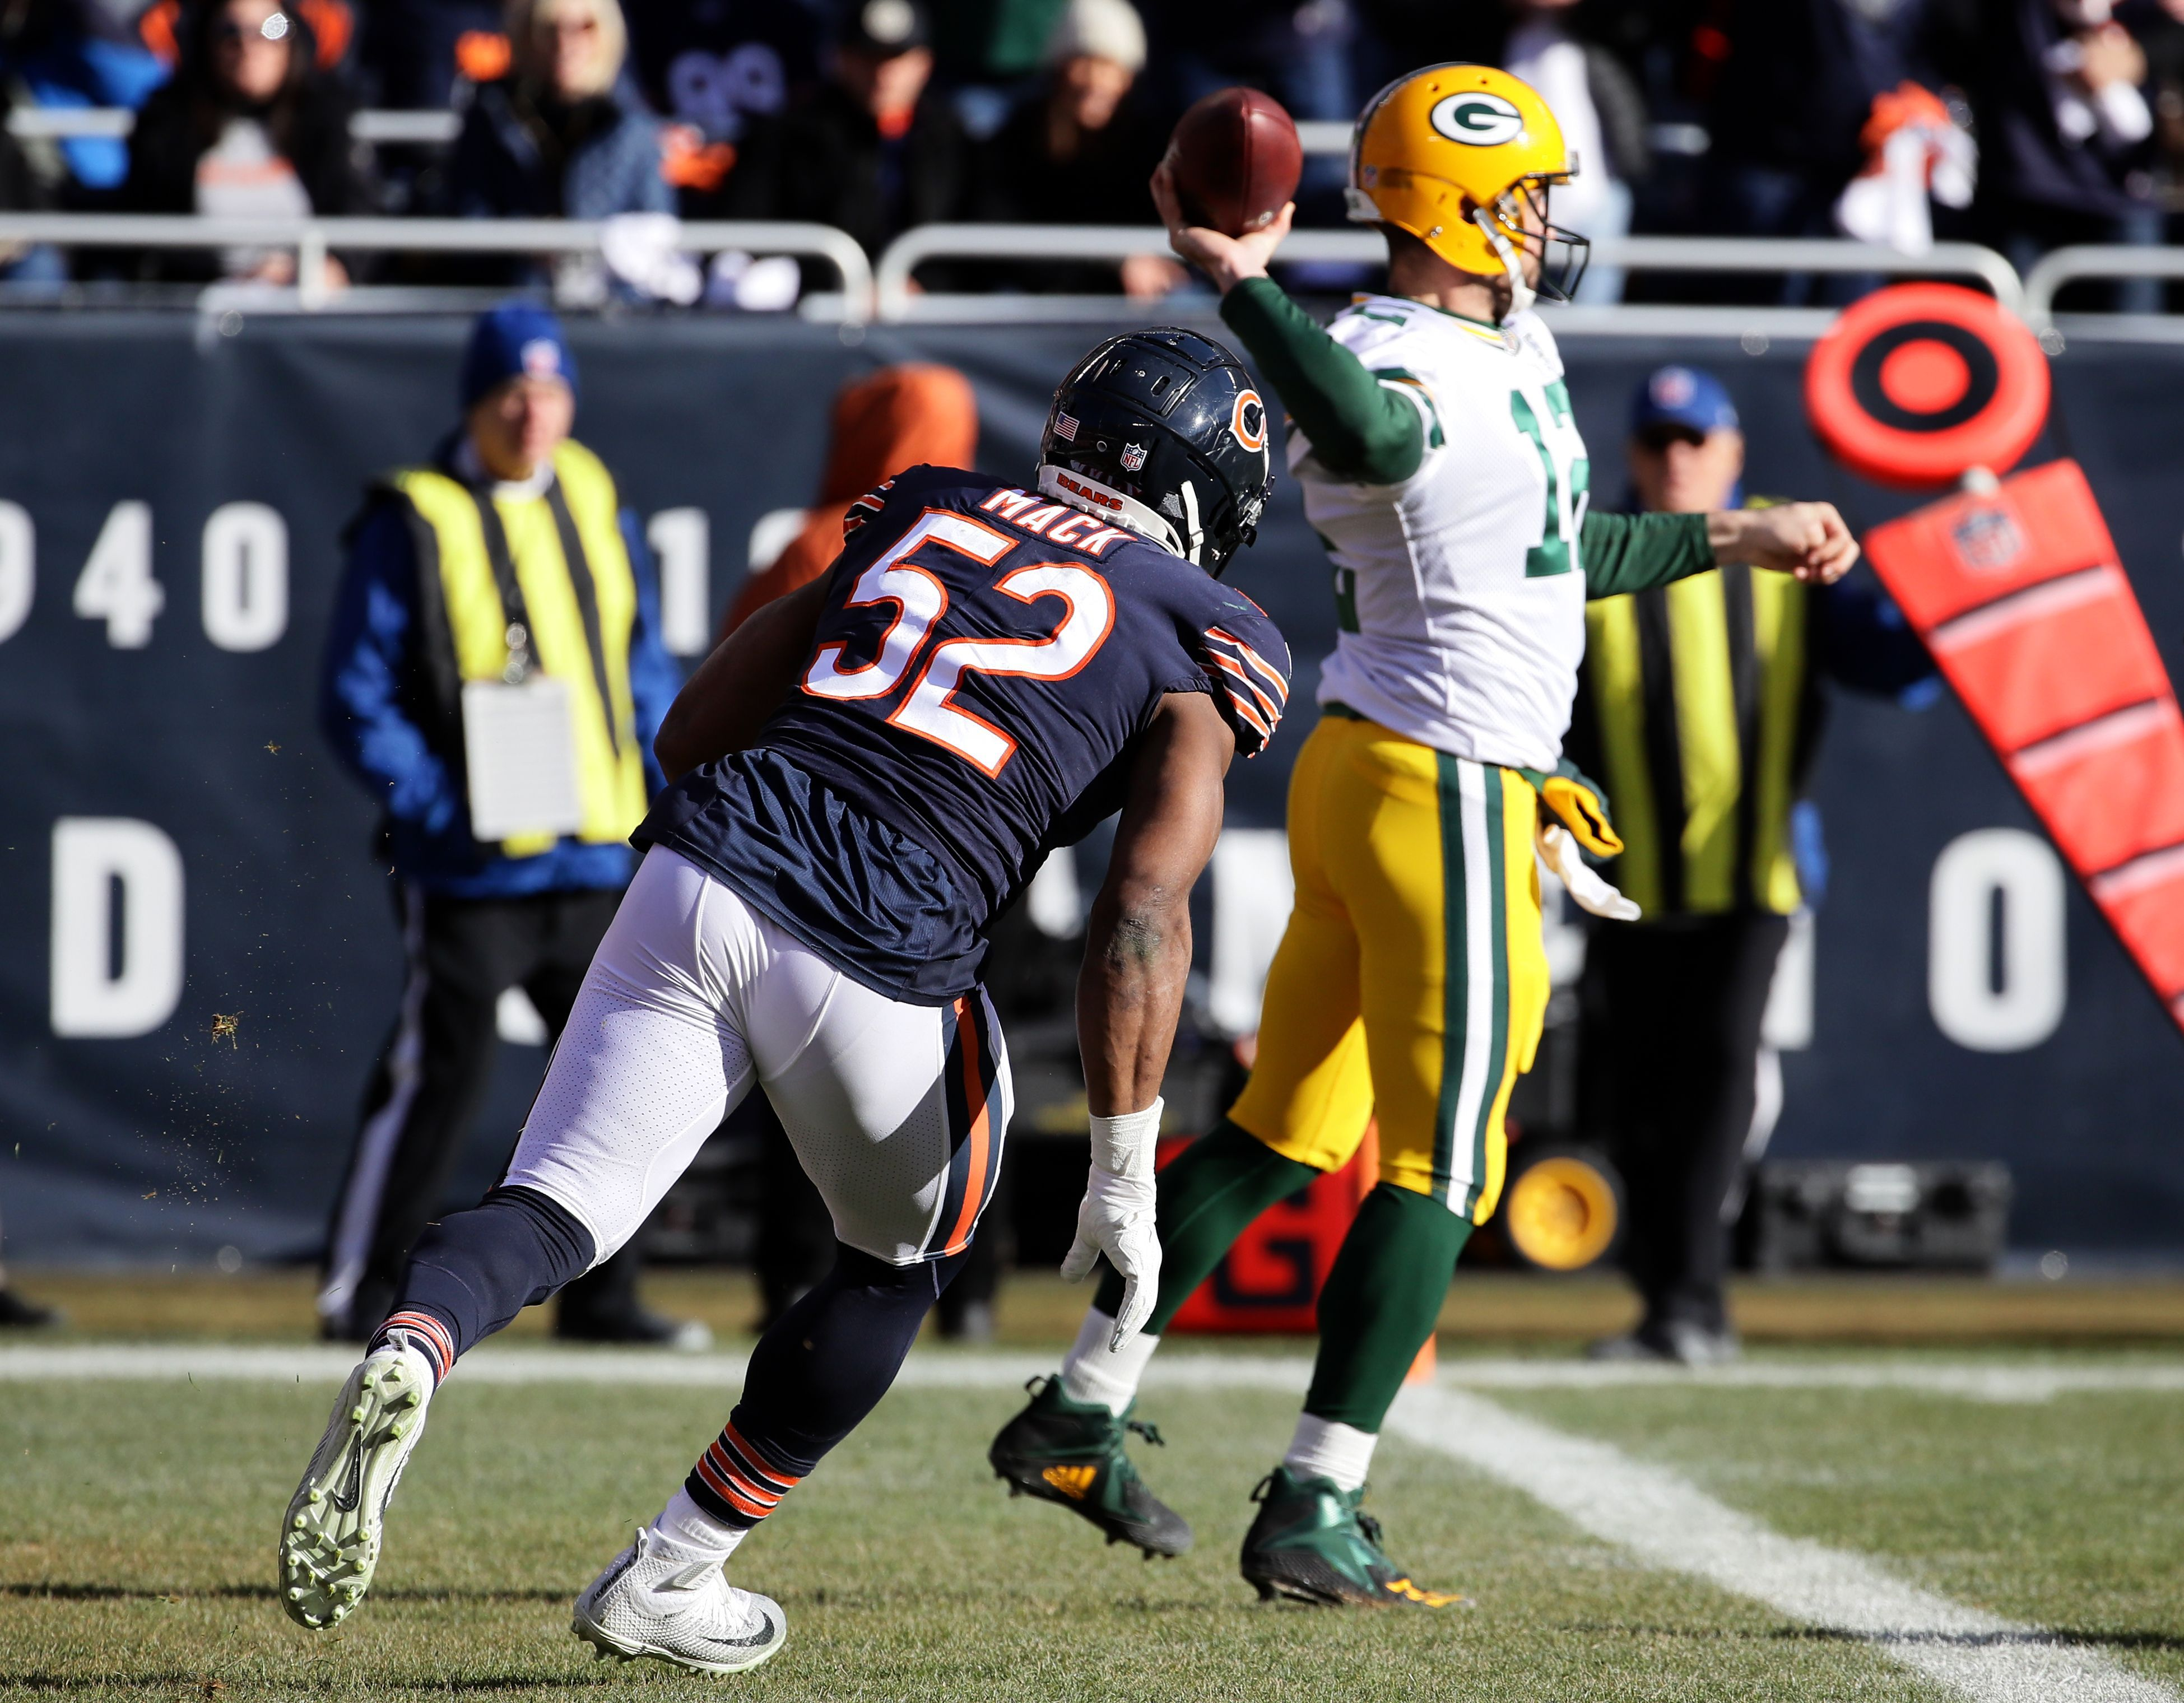 Packers Great Leroy Butler Slams Aaron Rodgers After Loss To Bears How Good Are You Yahoo Sports Packers Great Leroy Bears Packers Football Helmets Nfl